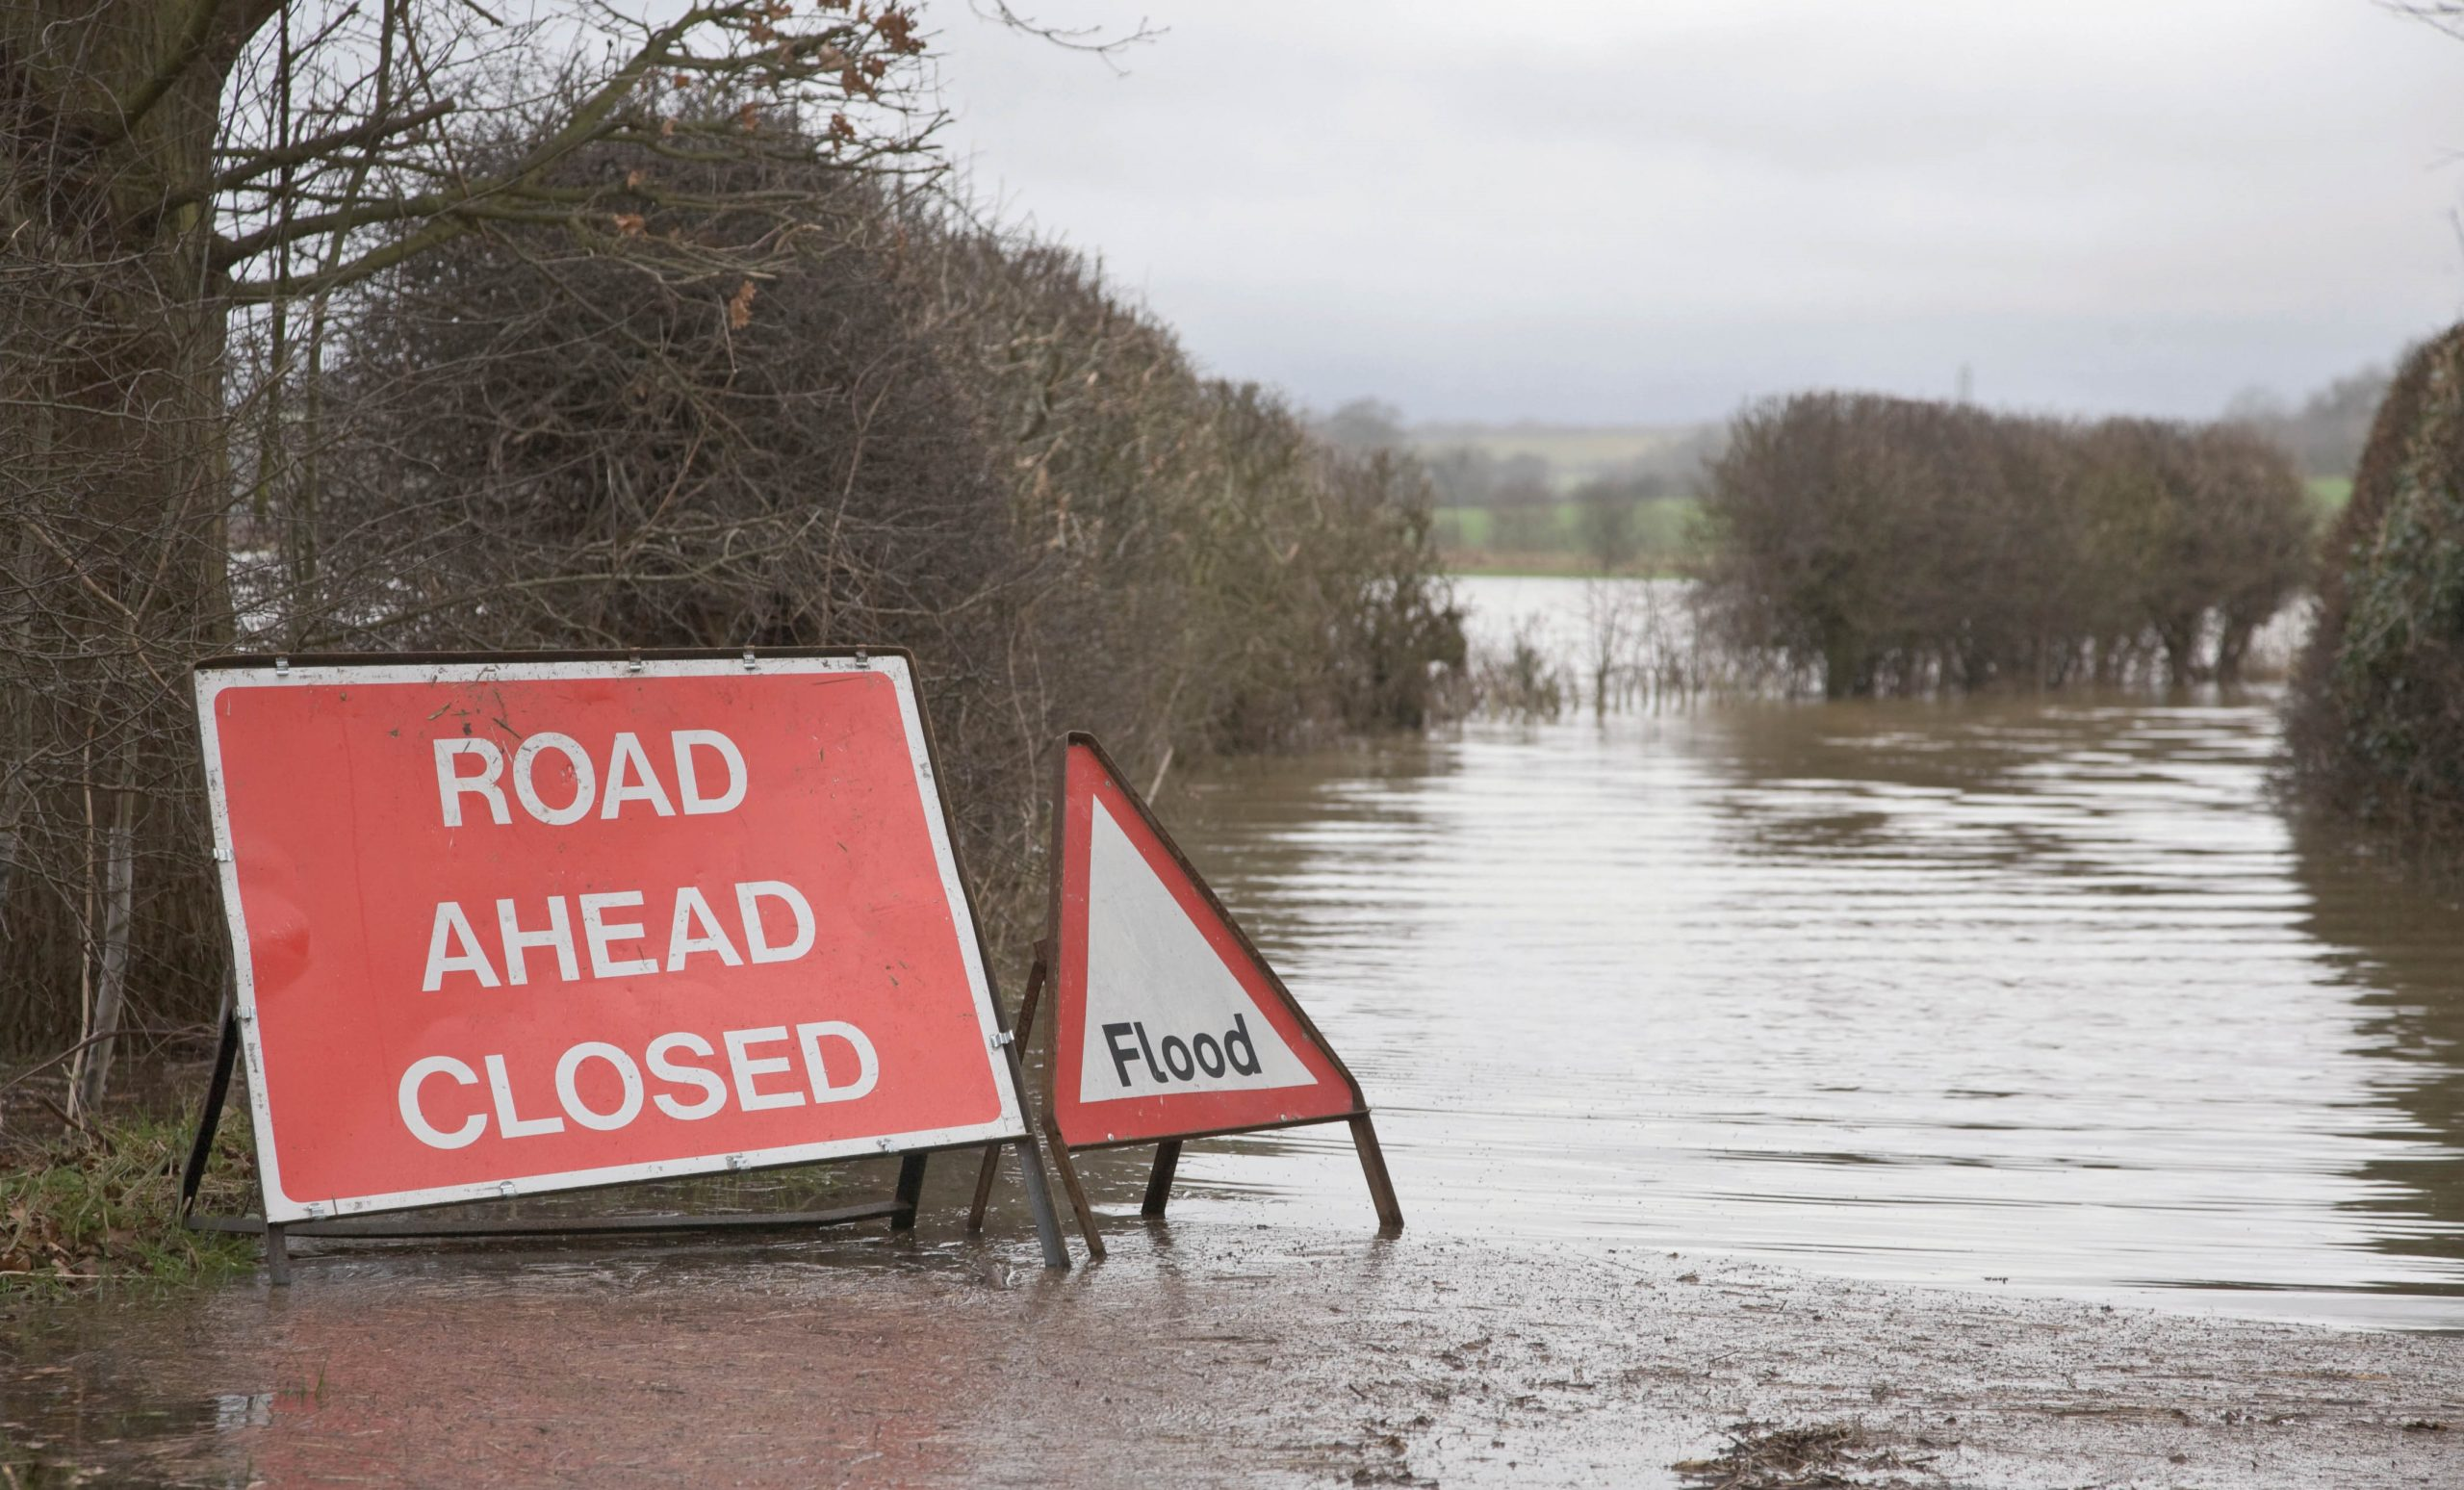 UK SAFETY EXPERT ARCO SHARES GUIDANCE ON FLOOD RECOVERY AFTER RECENT STORMS